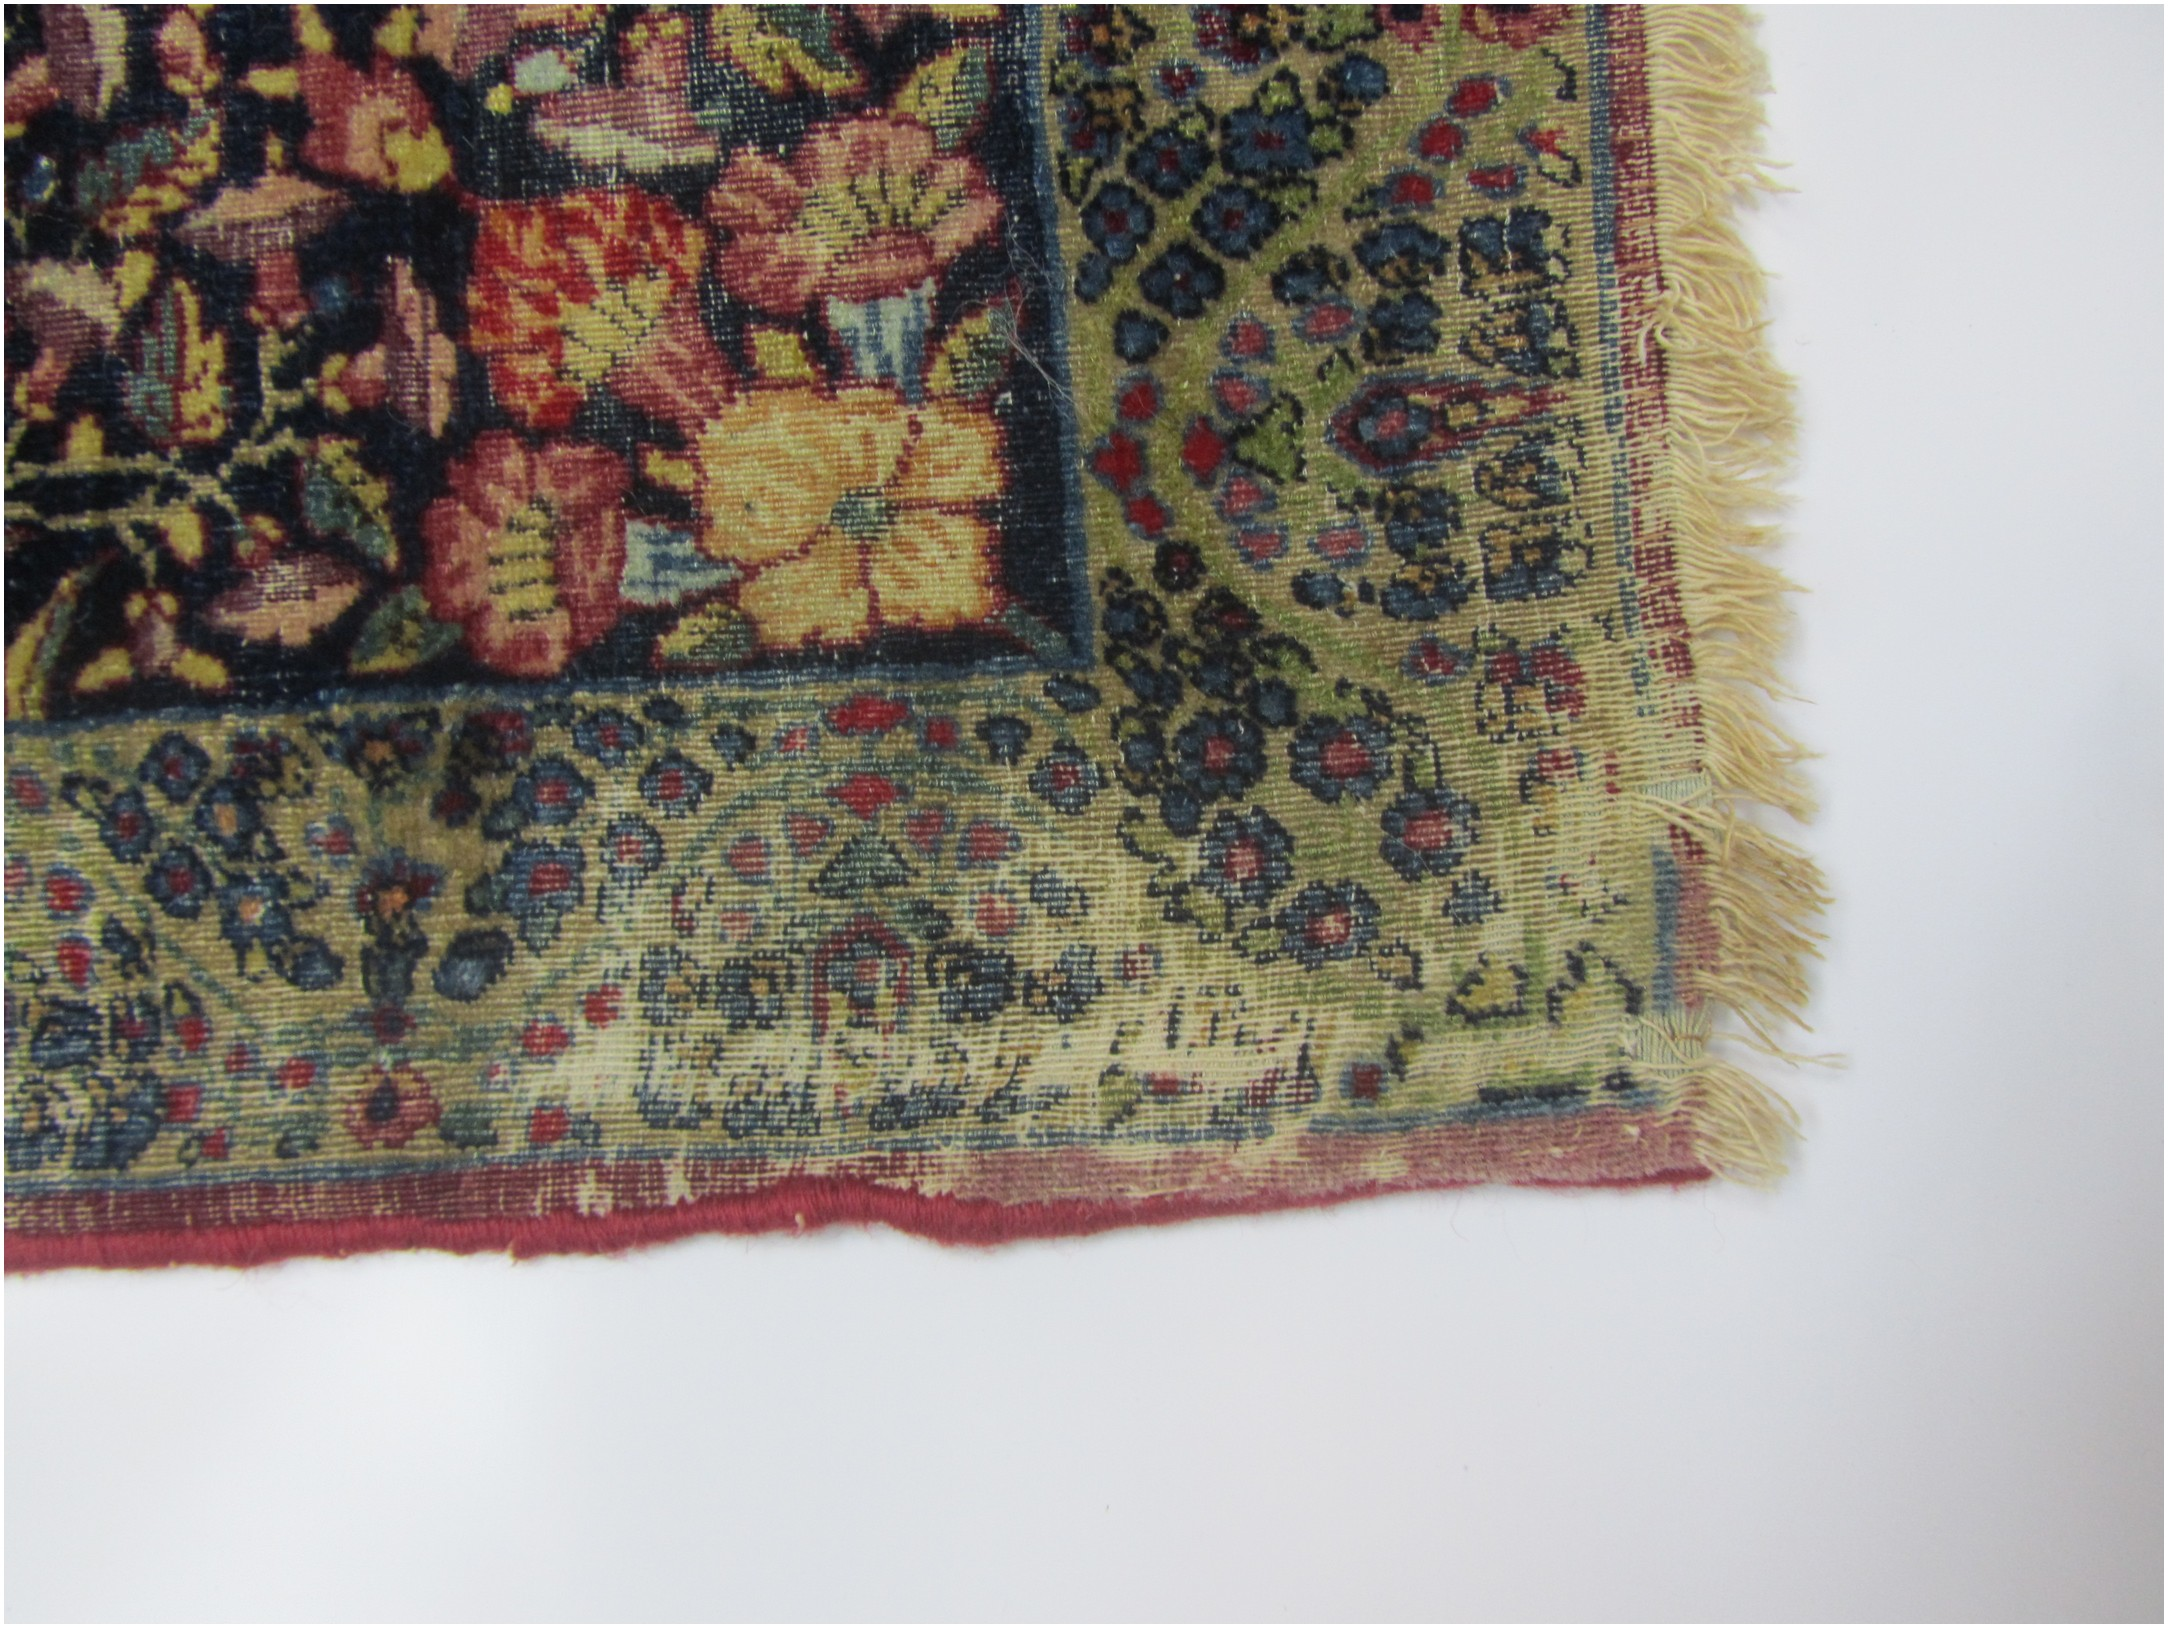 The fringe is damaged on both ends of the rug.